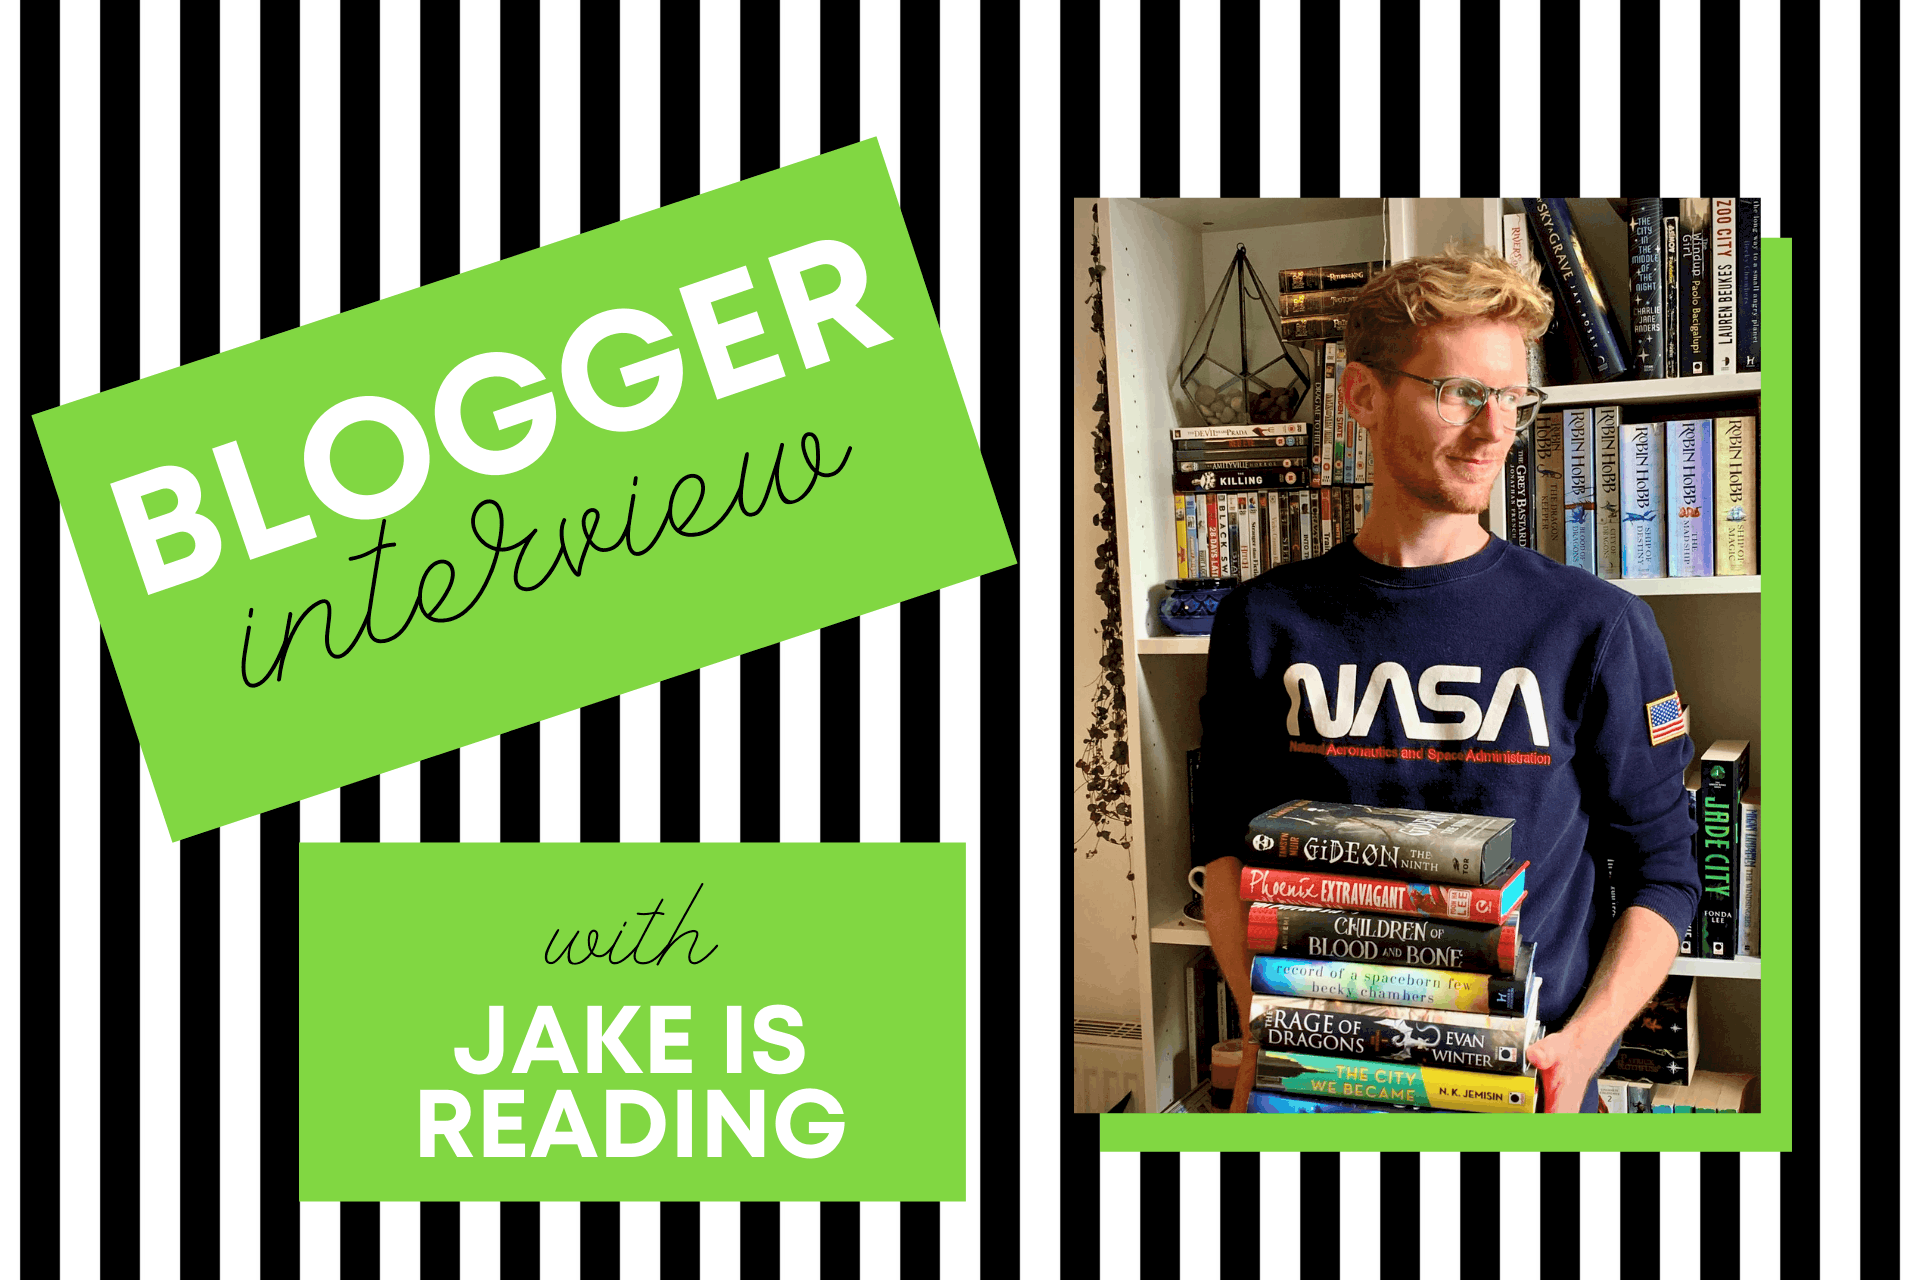 Blogger interview with Jake is Reading